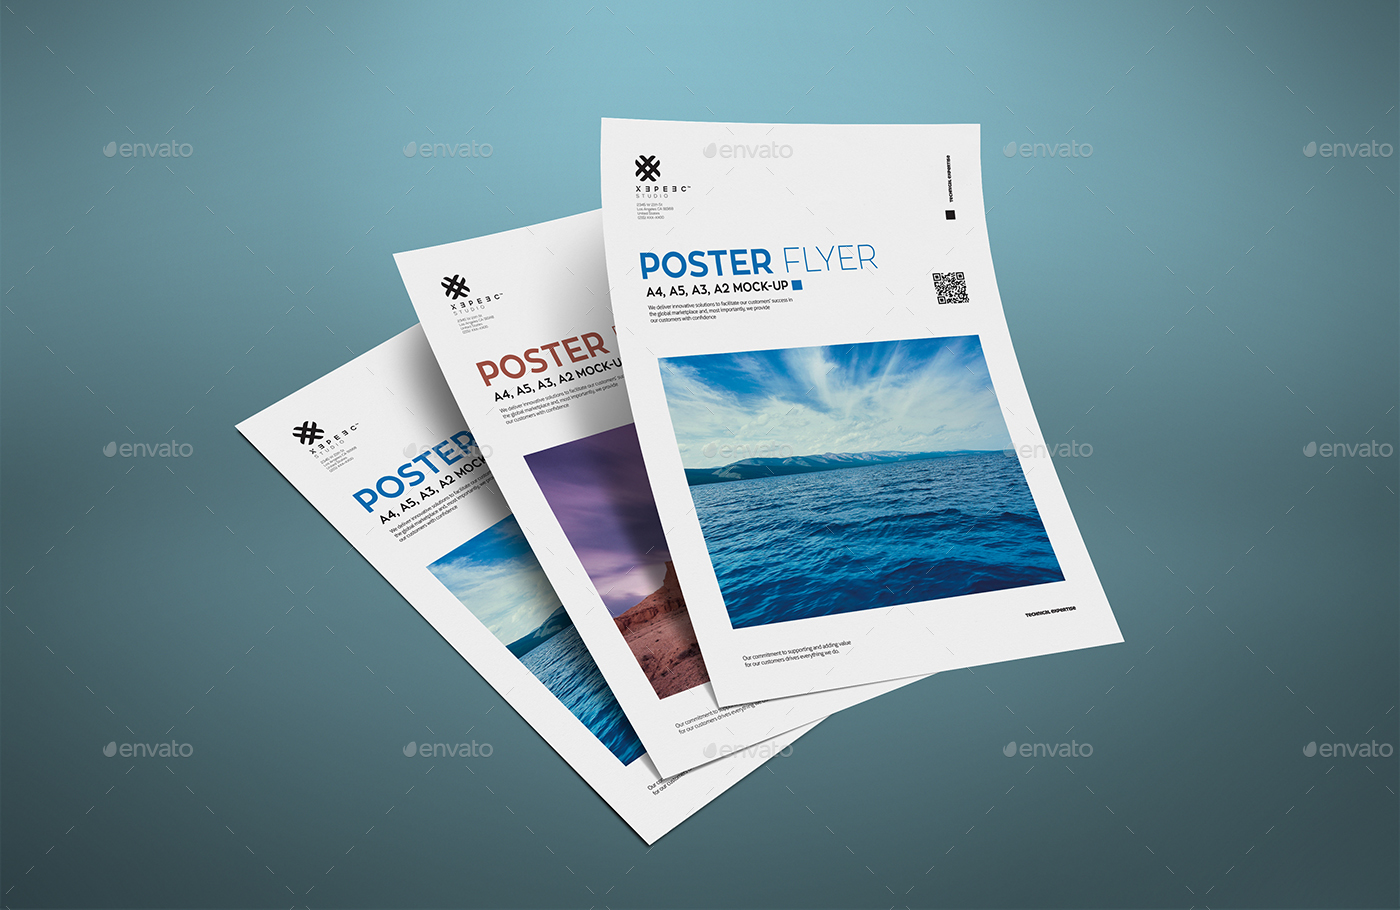 Powerpoint Templates For Posters